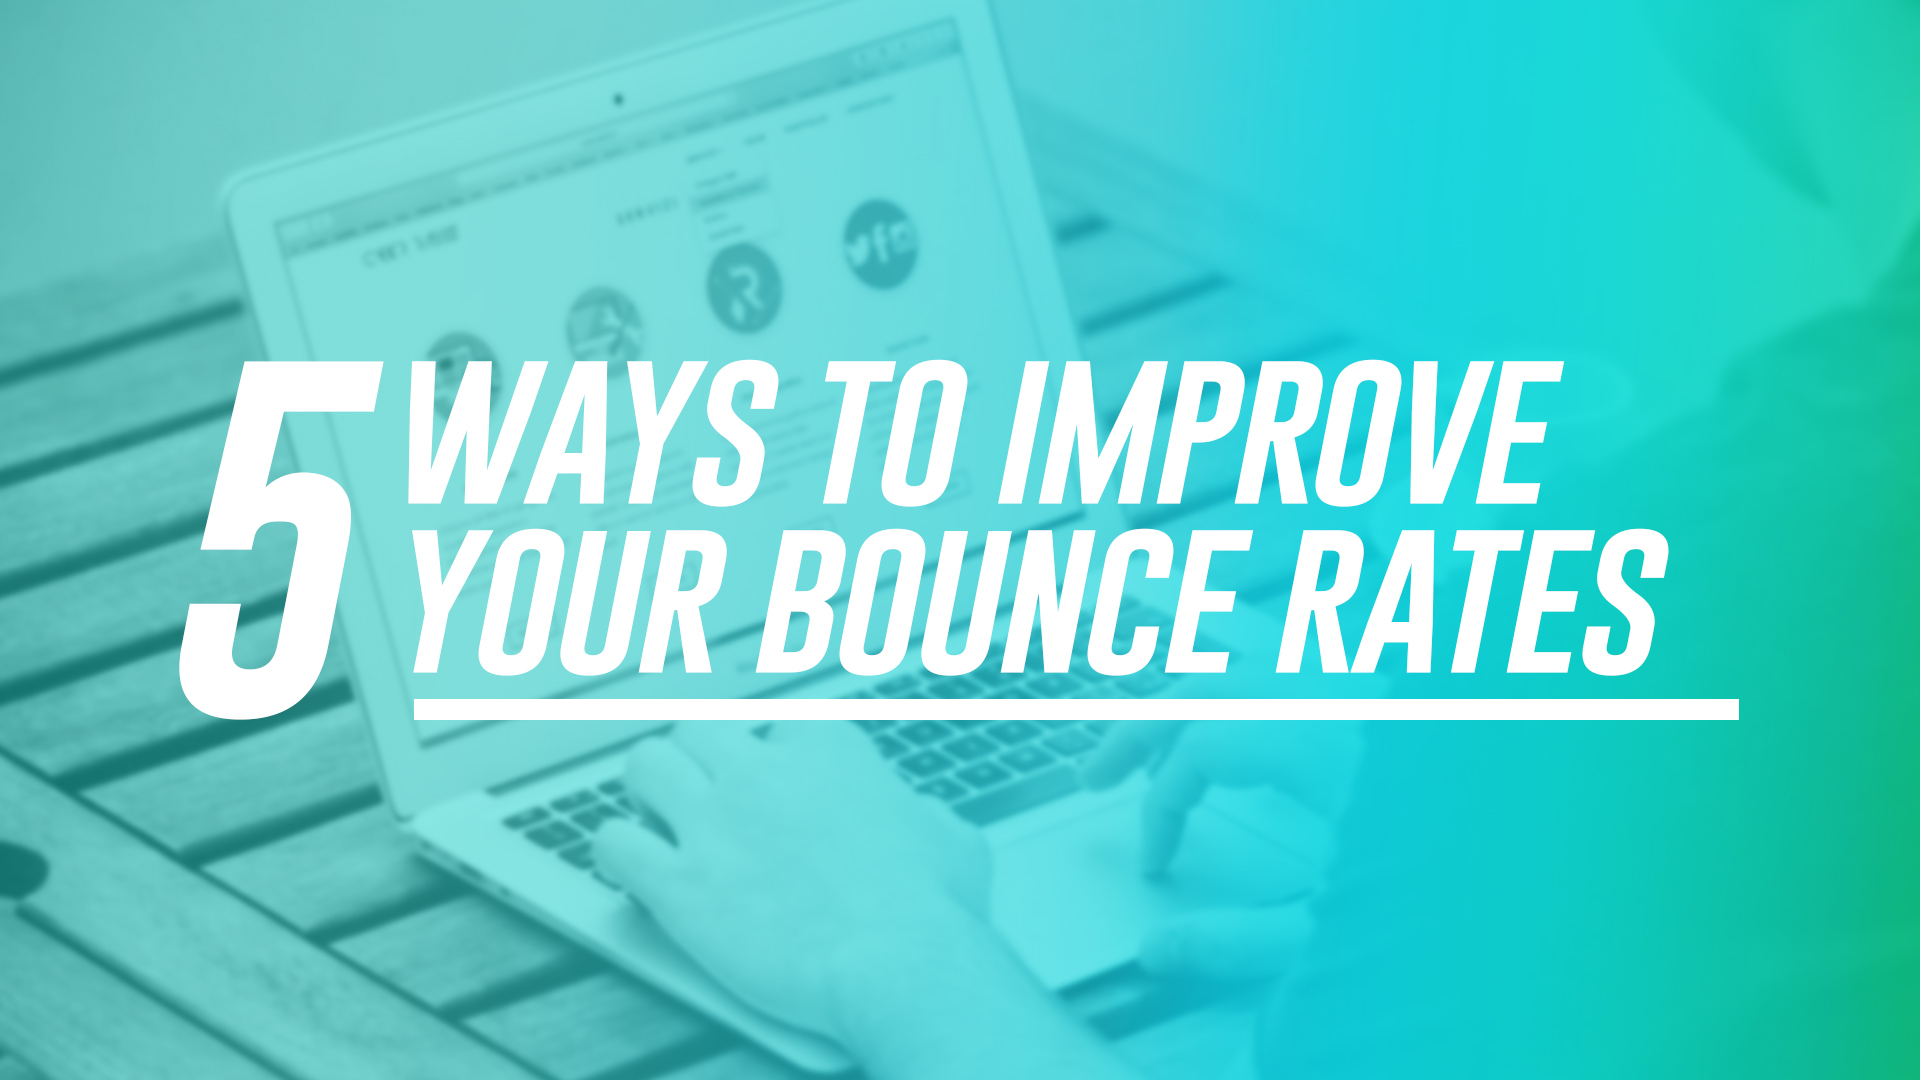 5 Ways to Improve Your Bounce Rates